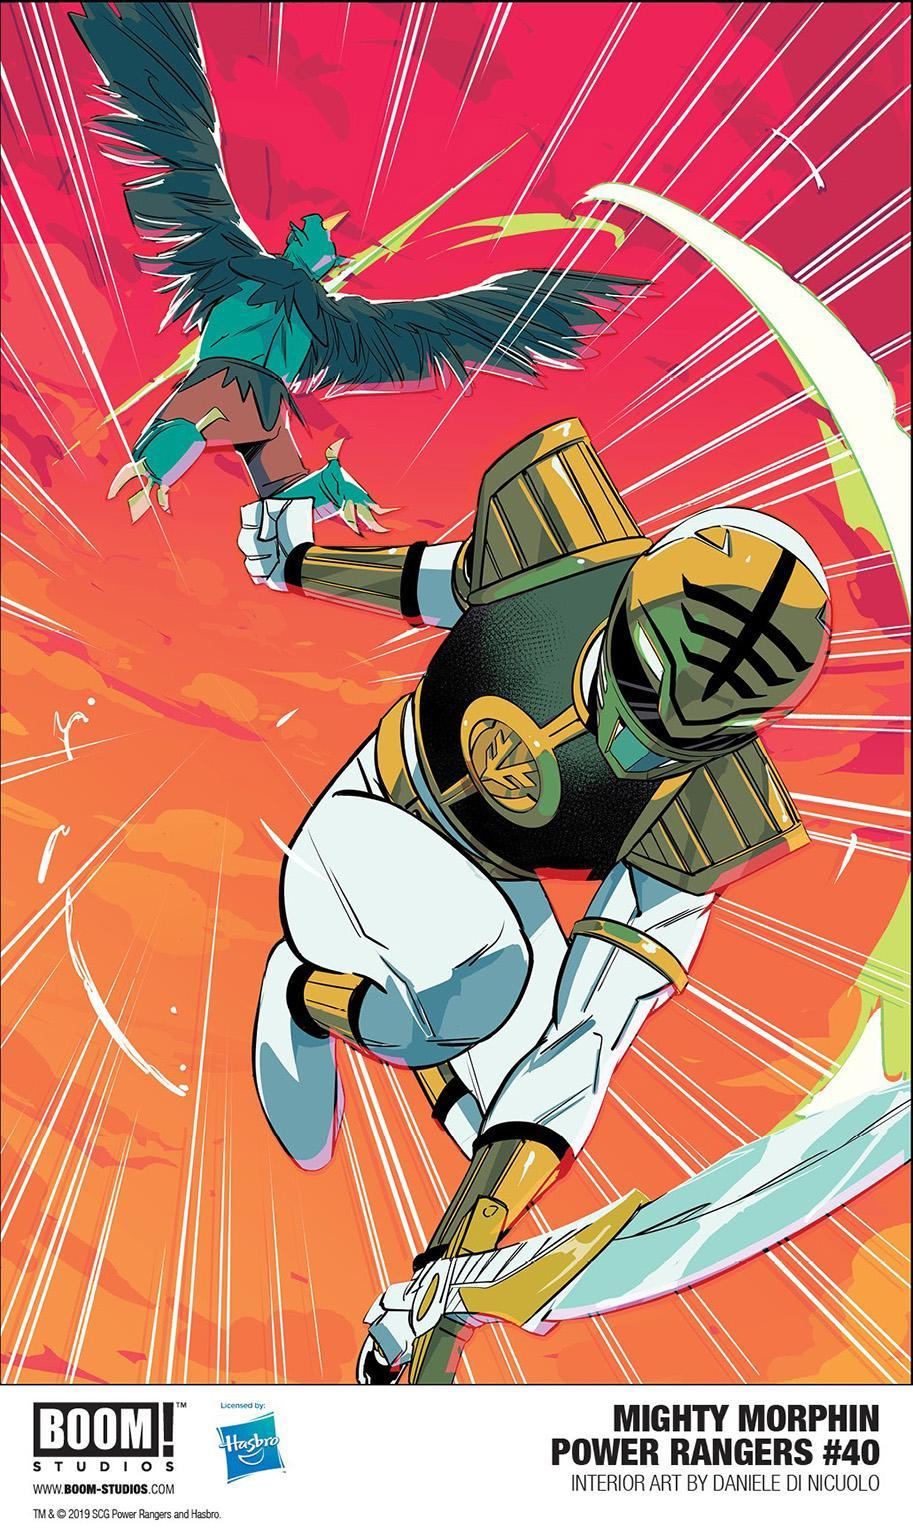 Mighty-Morphin-Power-Rangers-40-Preview-Interior-2